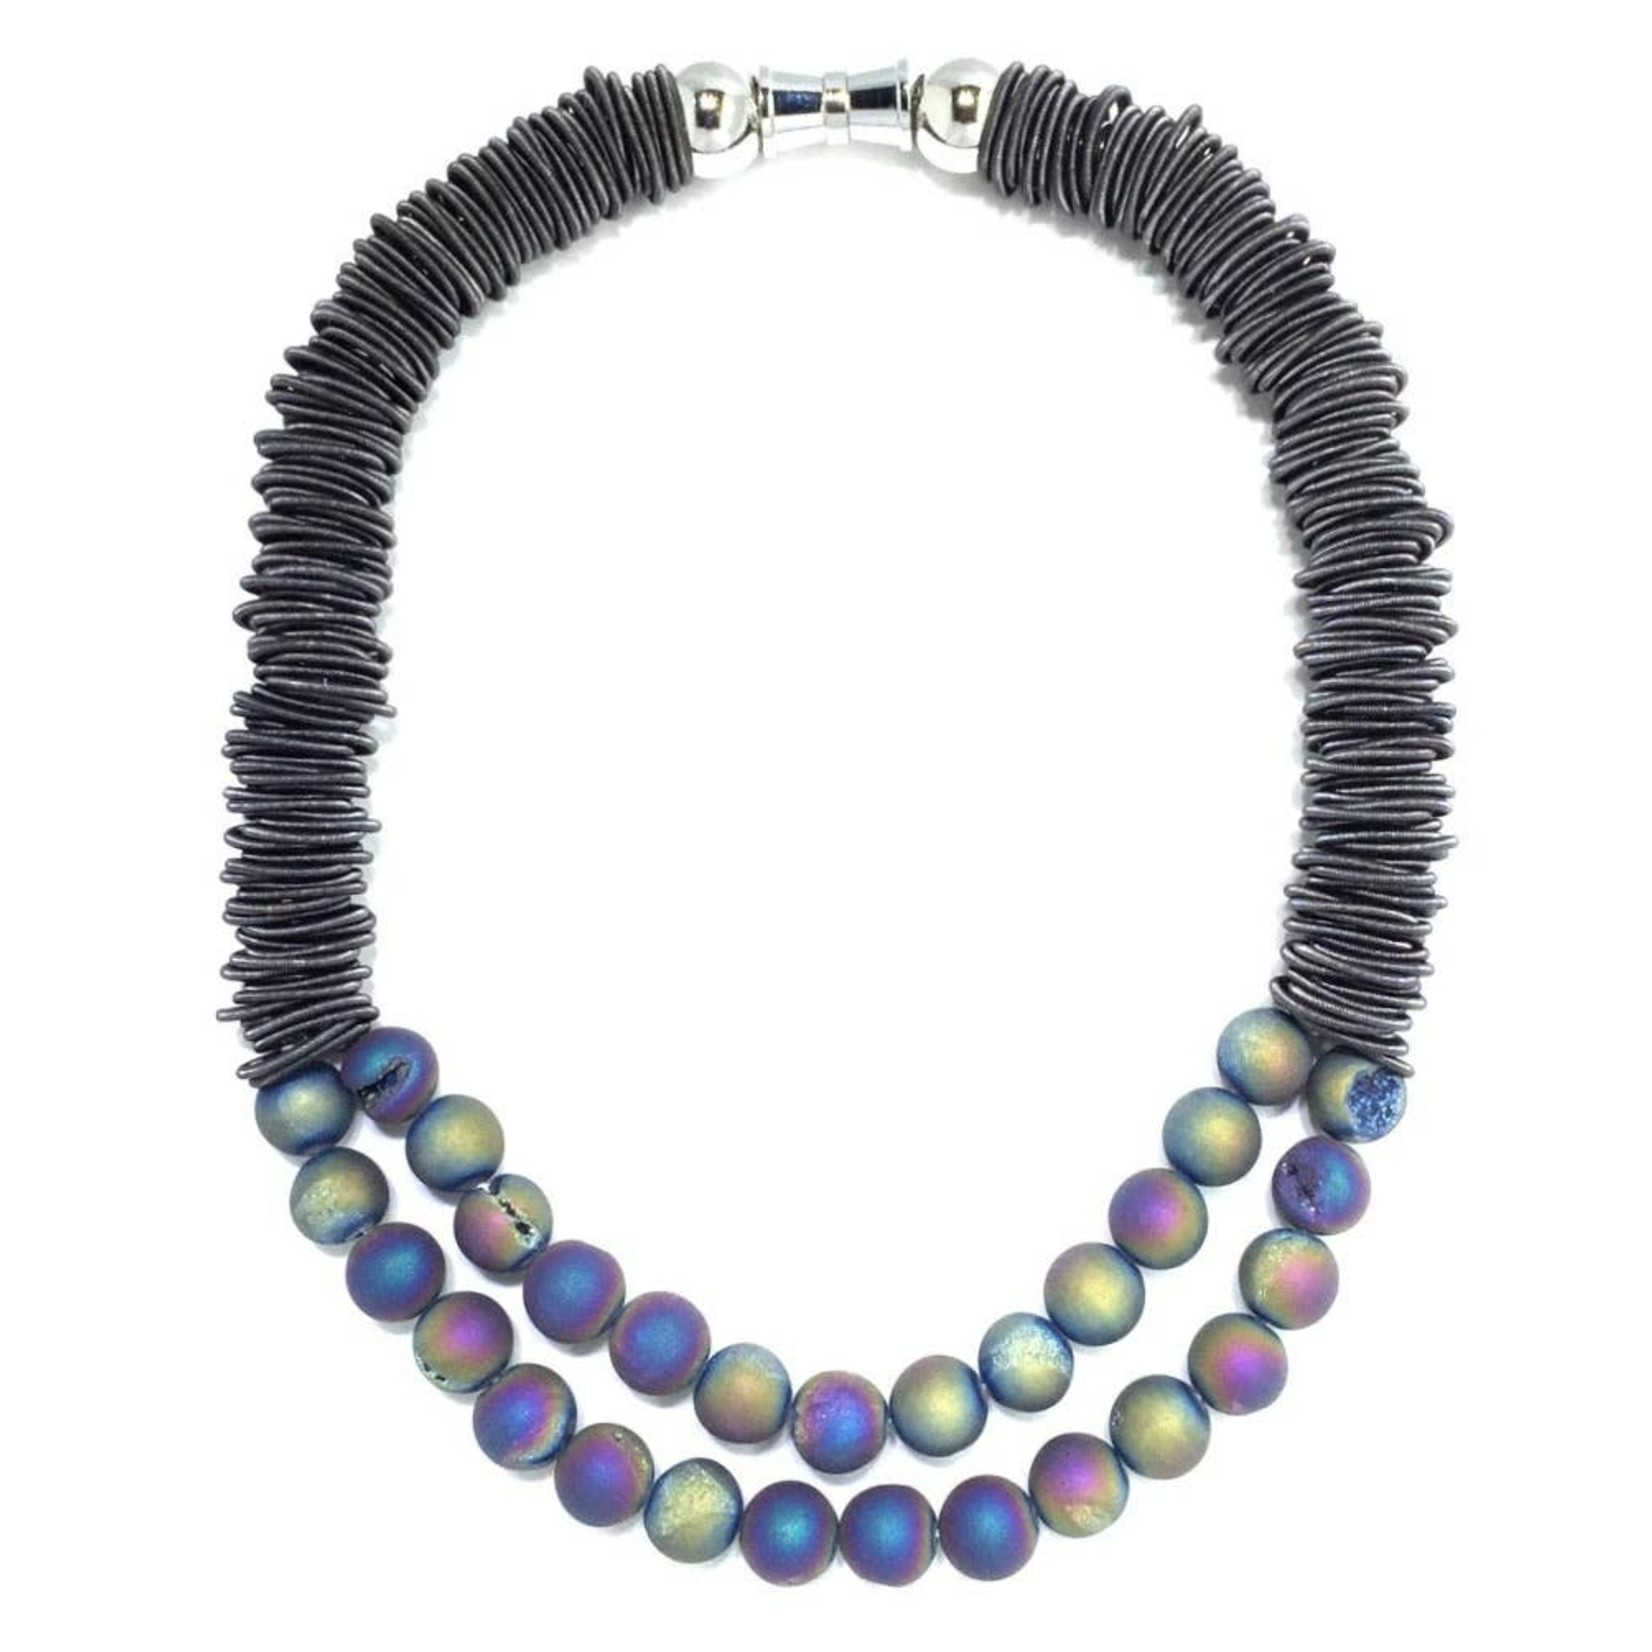 Sea Lily Slate PW Spring Ring Necklace w/ Iridescent Geodes